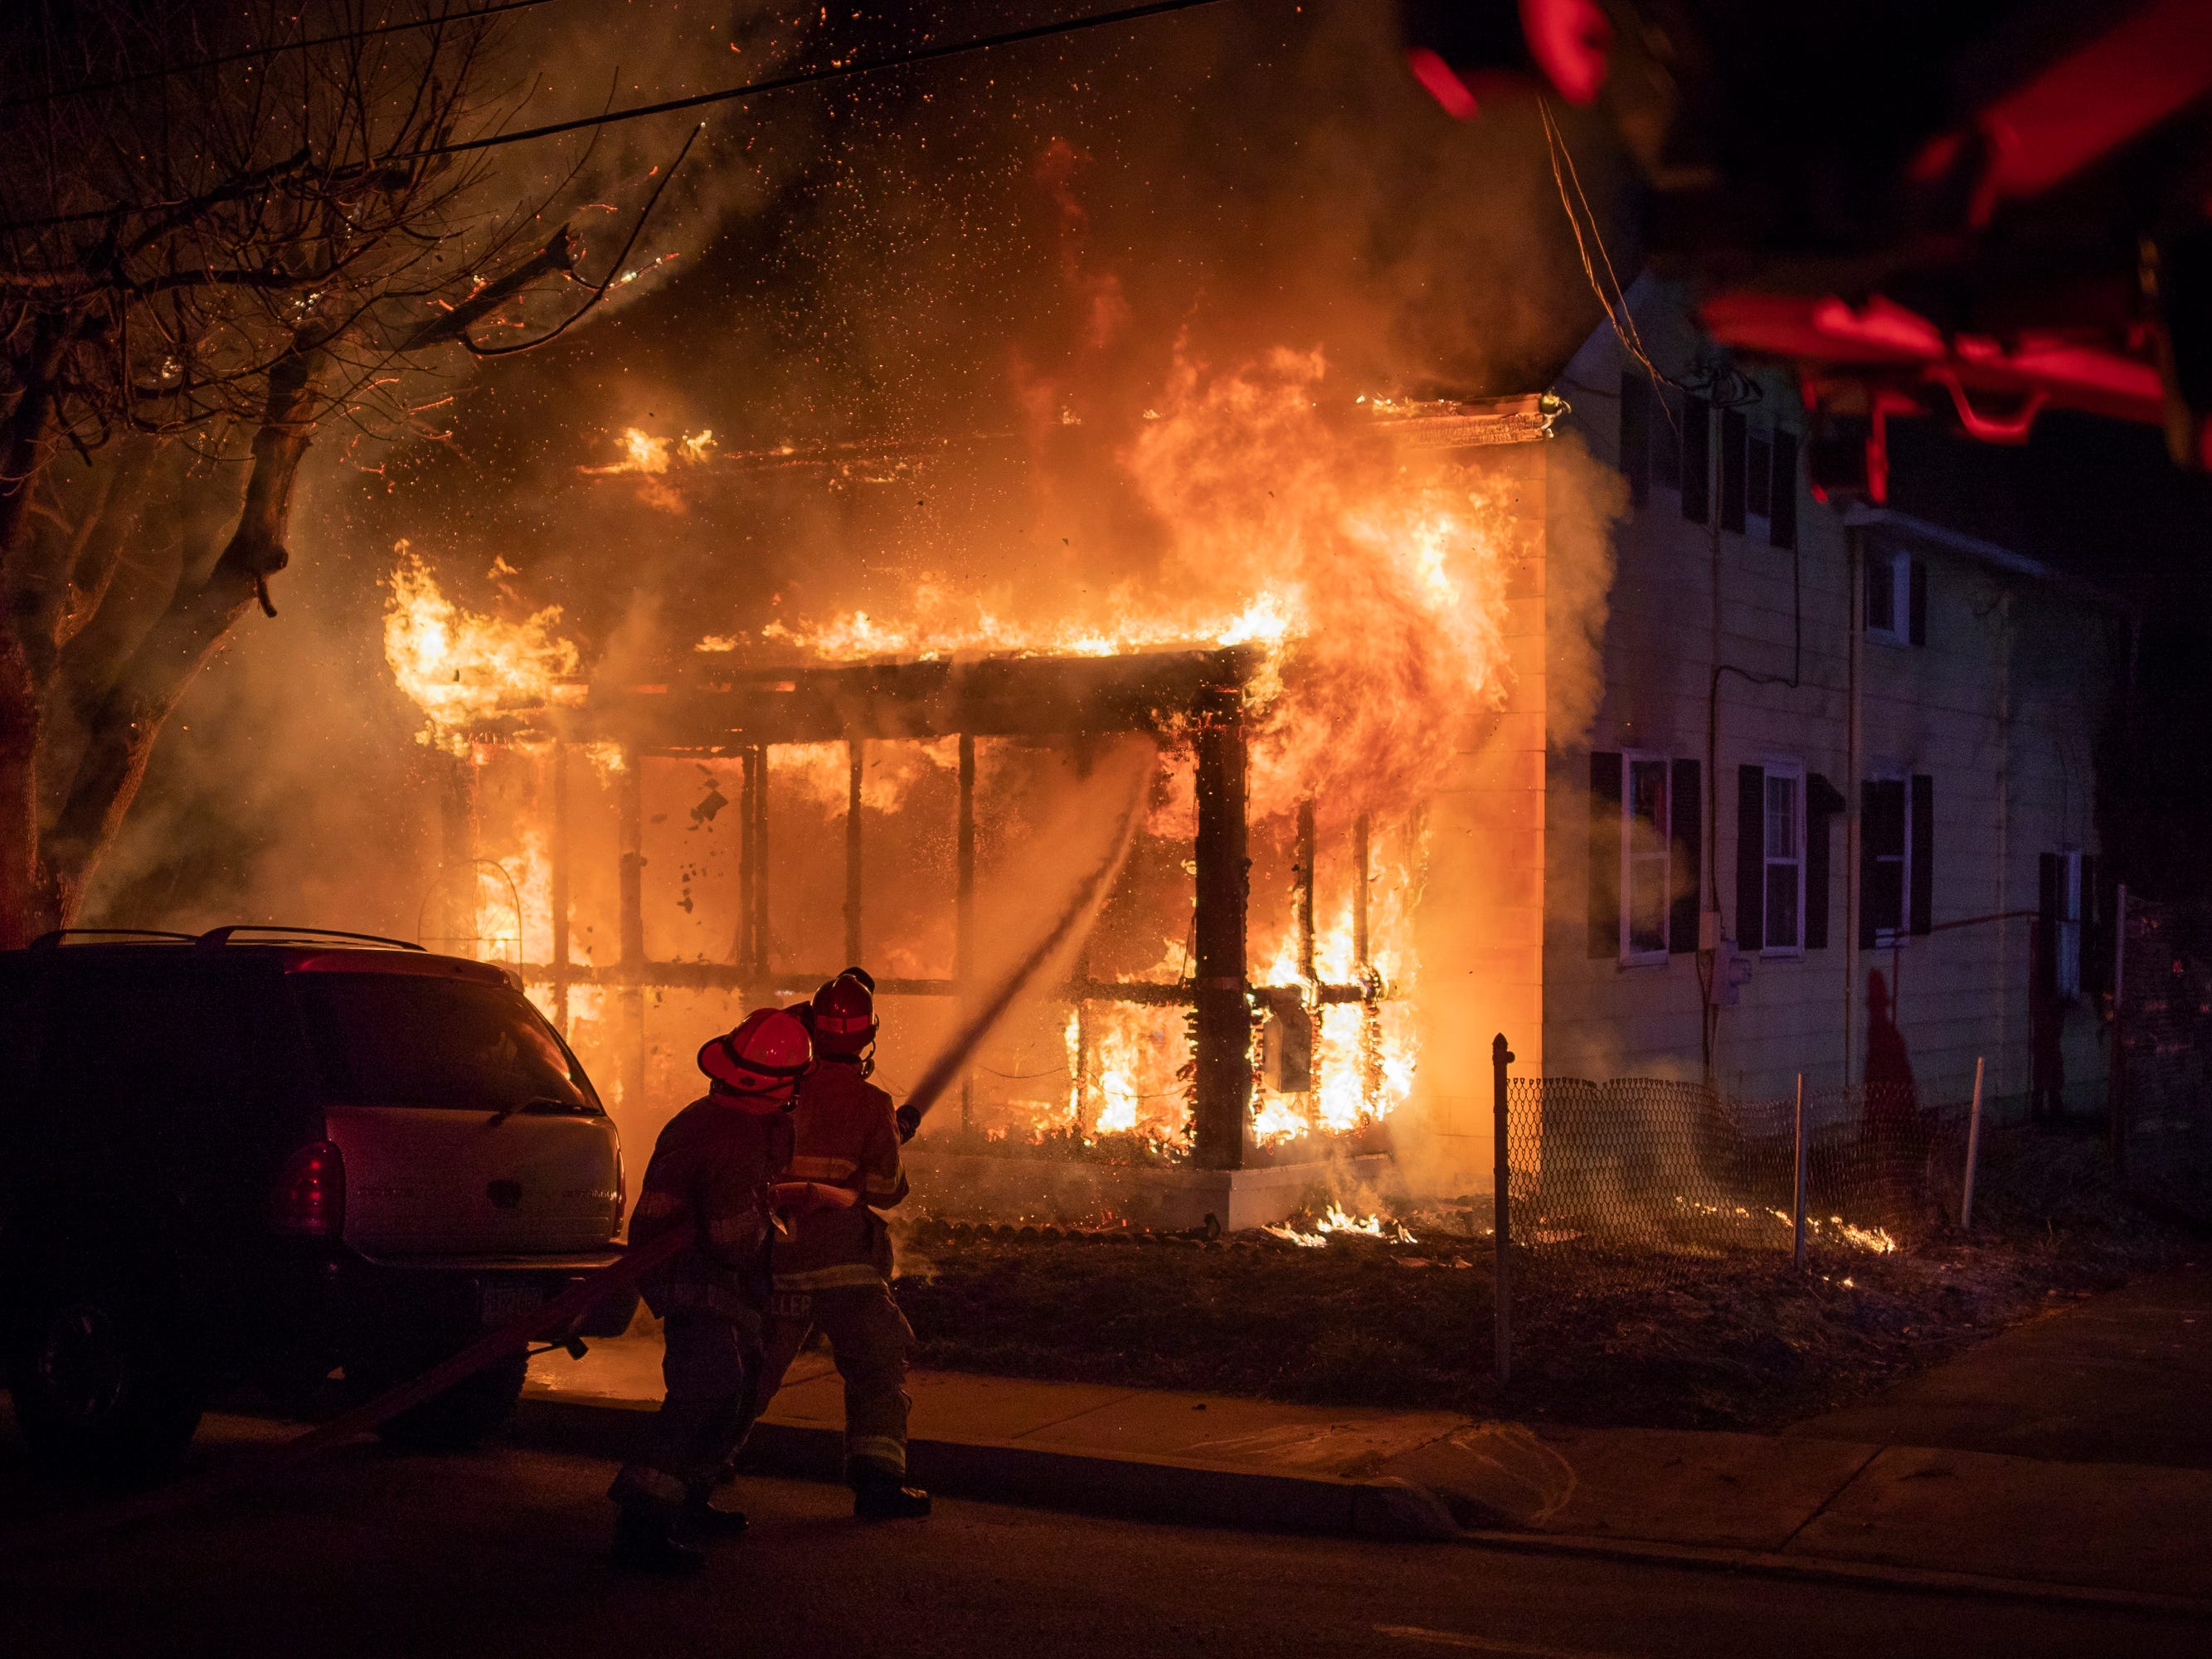 Captain Geoff Miller, right, hoses down a fully involved porch while backed up by junior firefighter Gabe Cromer, 15,  at the scene of a second-alarm house fire on the 800 block of West Middle Street, Saturday, March 17, 2018 in Hanover. No one was injured in the blaze, which came just hours after another house exploded in a three-alarm fire in Hanover.